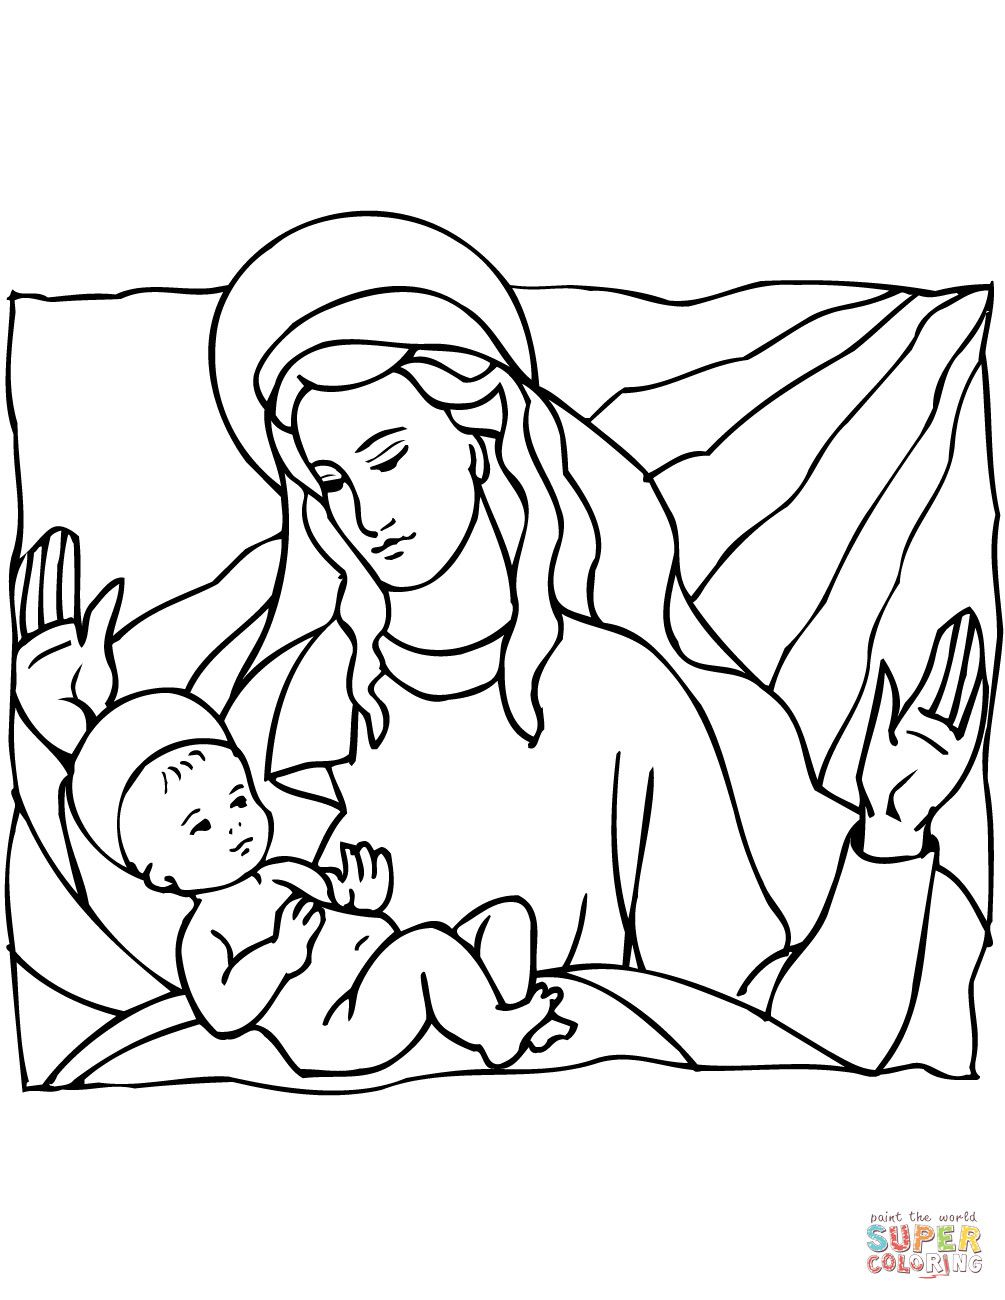 Baby Jesus Coloring Page Awesome Baby Jesus Coloring Pages Gerrydraaisma Jesus Coloring Pages Free Christmas Coloring Pages Christmas Coloring Pages